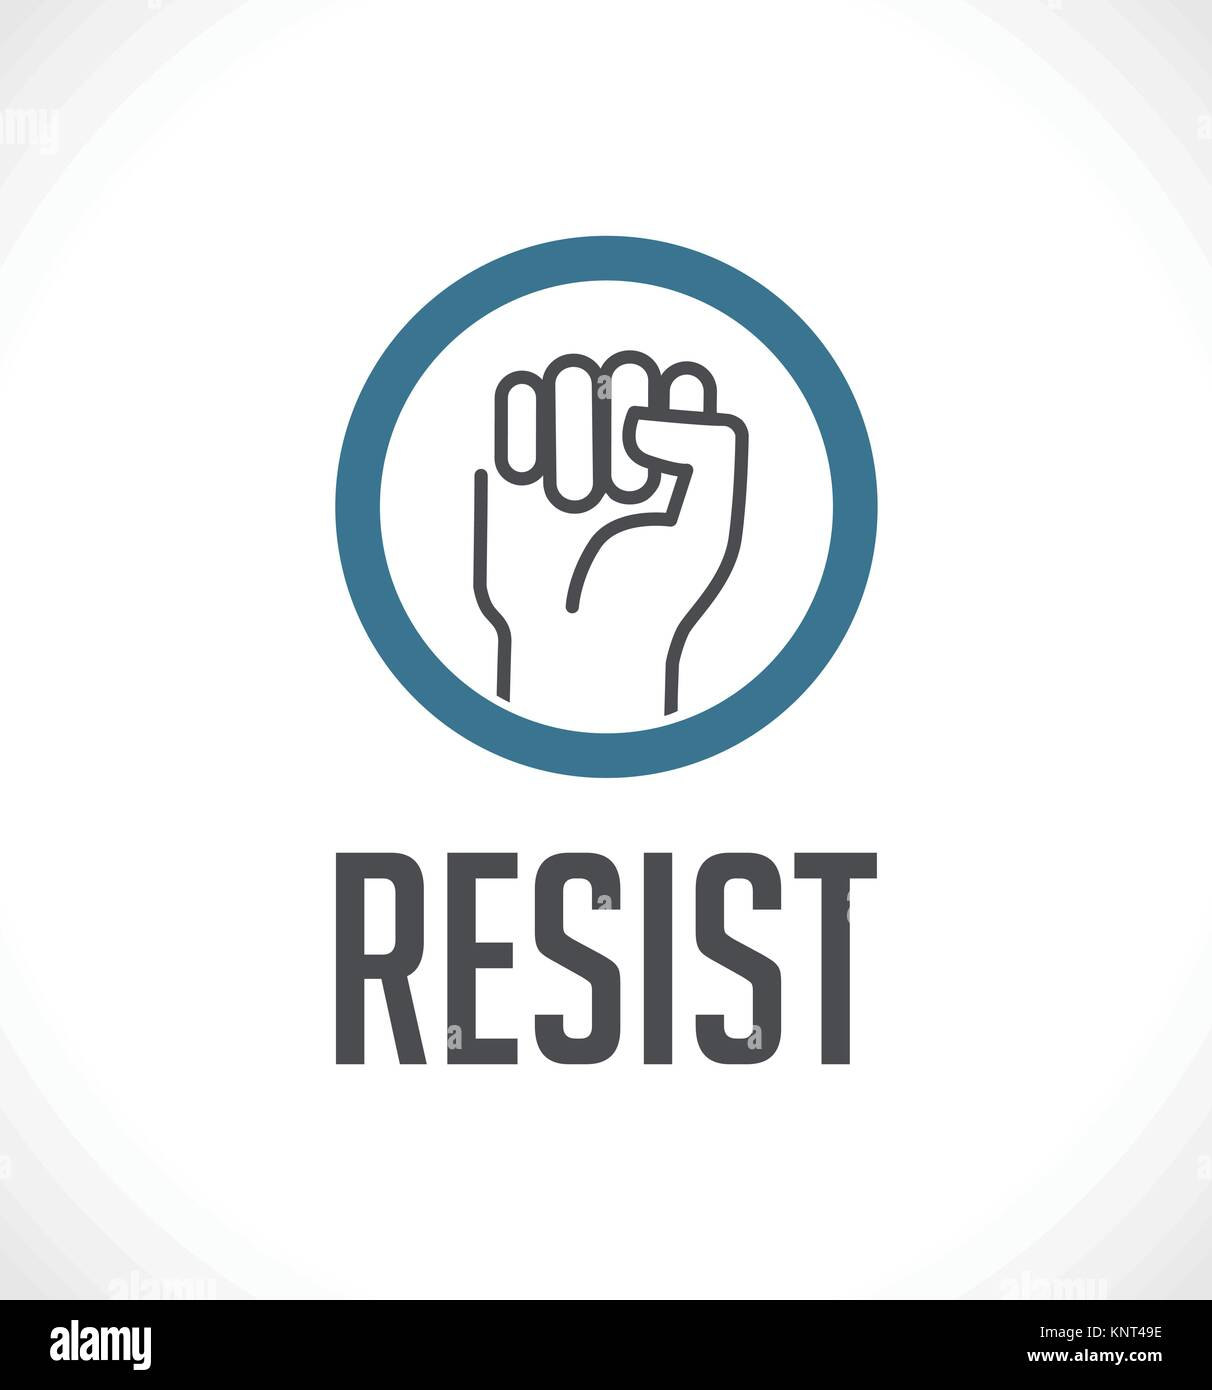 Logo - resist concept - fist as symbol of resistance – stock illustration - Stock Vector